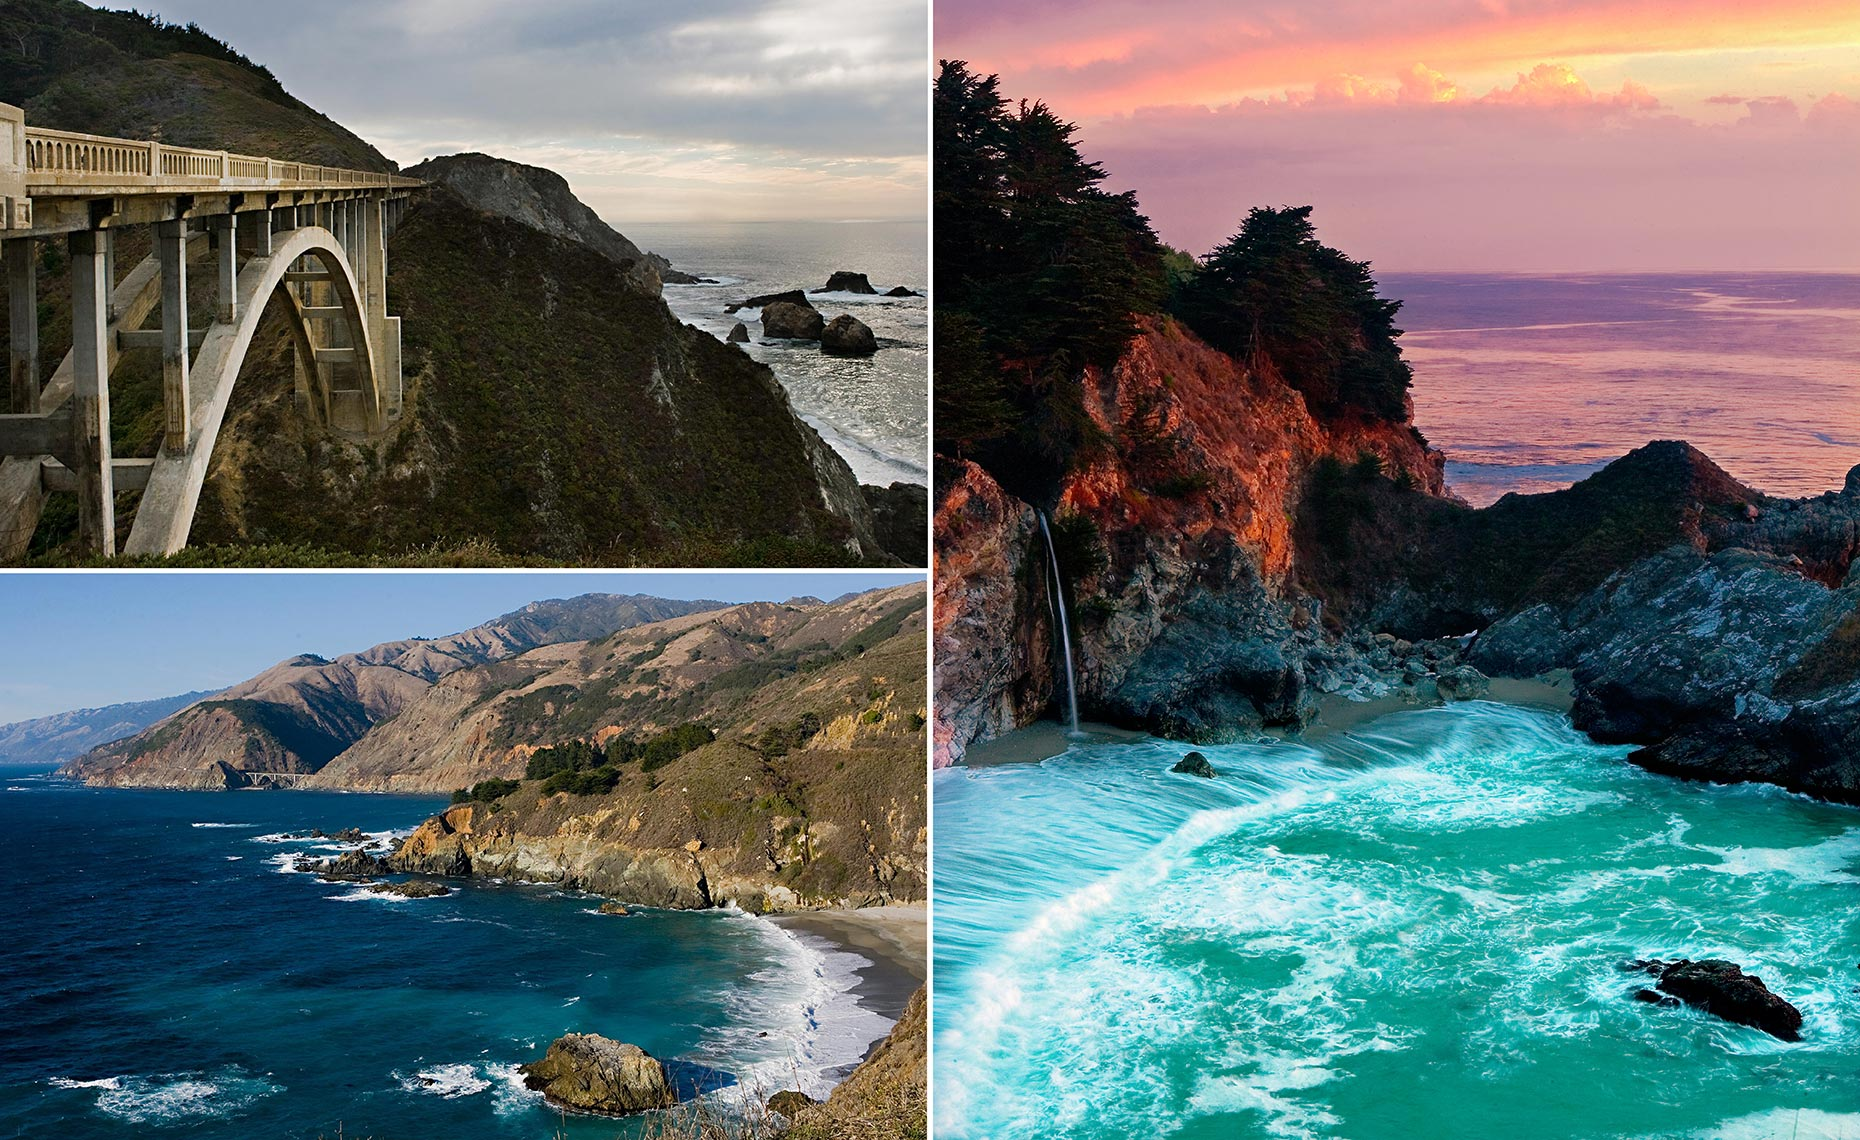 24_Big_Sur_Bixby_Bridge_julia_pfeiffer_burns_state_park_mcway_falls__California_Environment_Landscape_Chris_Wellhausen_Photography.JPG